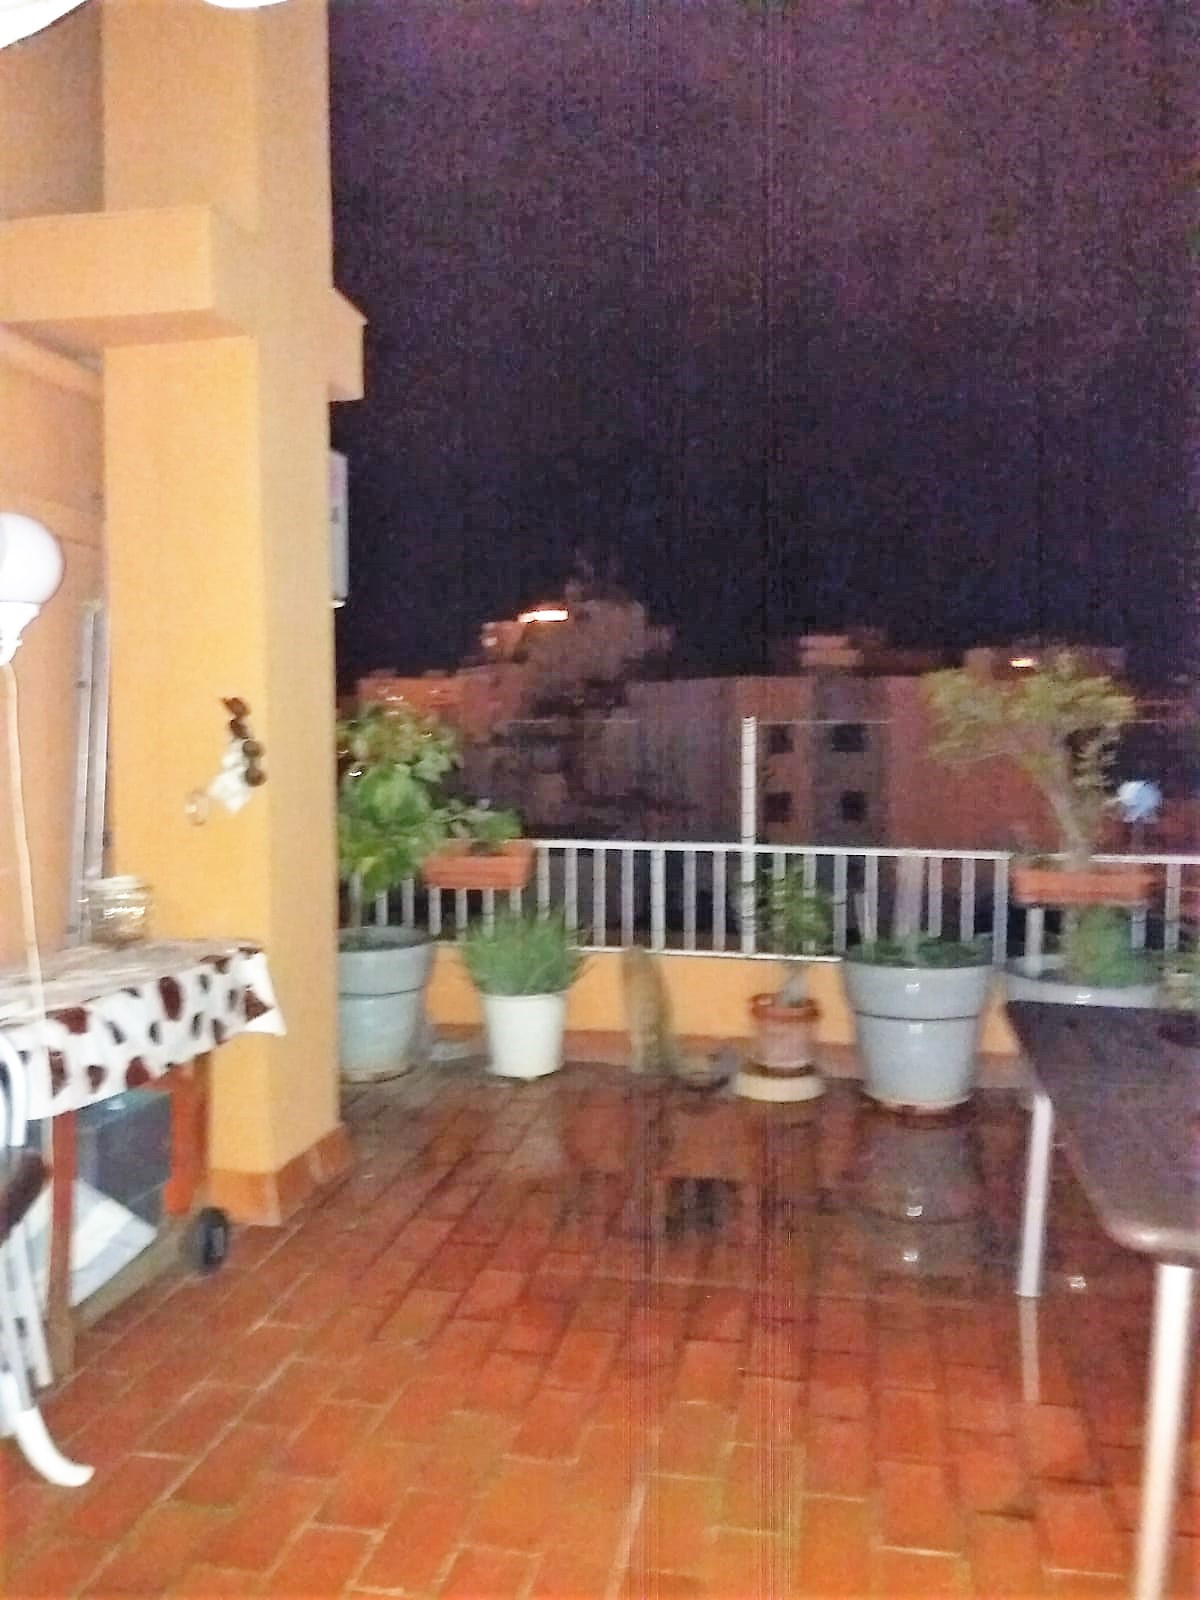 Penthouse with lift area Pedro Garau square with 3 bedrooms and a bathroom, kitchen, living room, pa,Spain